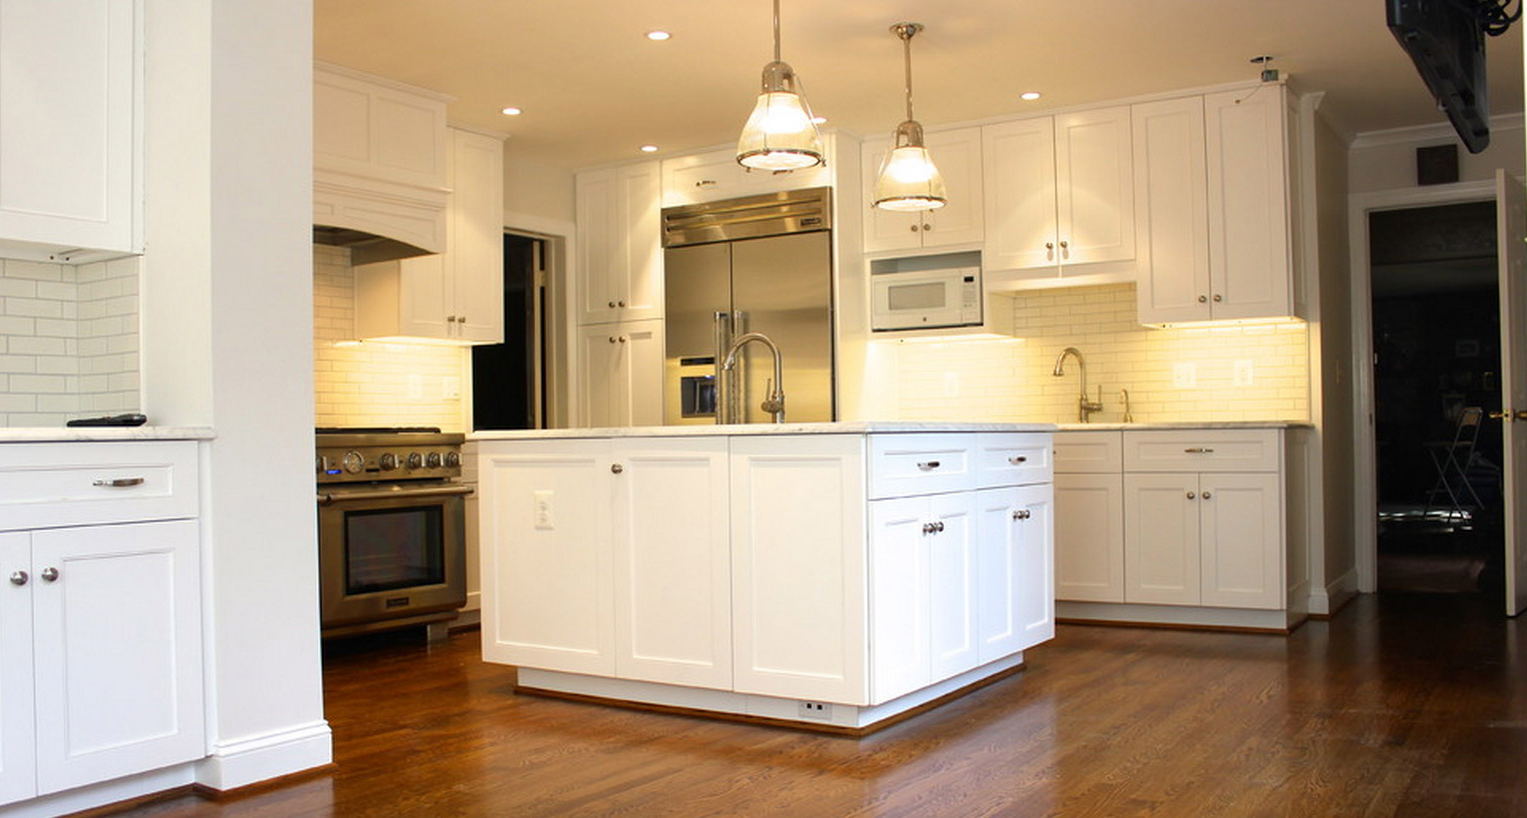 Remodeling Your Kitchen Kitchen Remodeling At Its Best Northern Va Dc Md